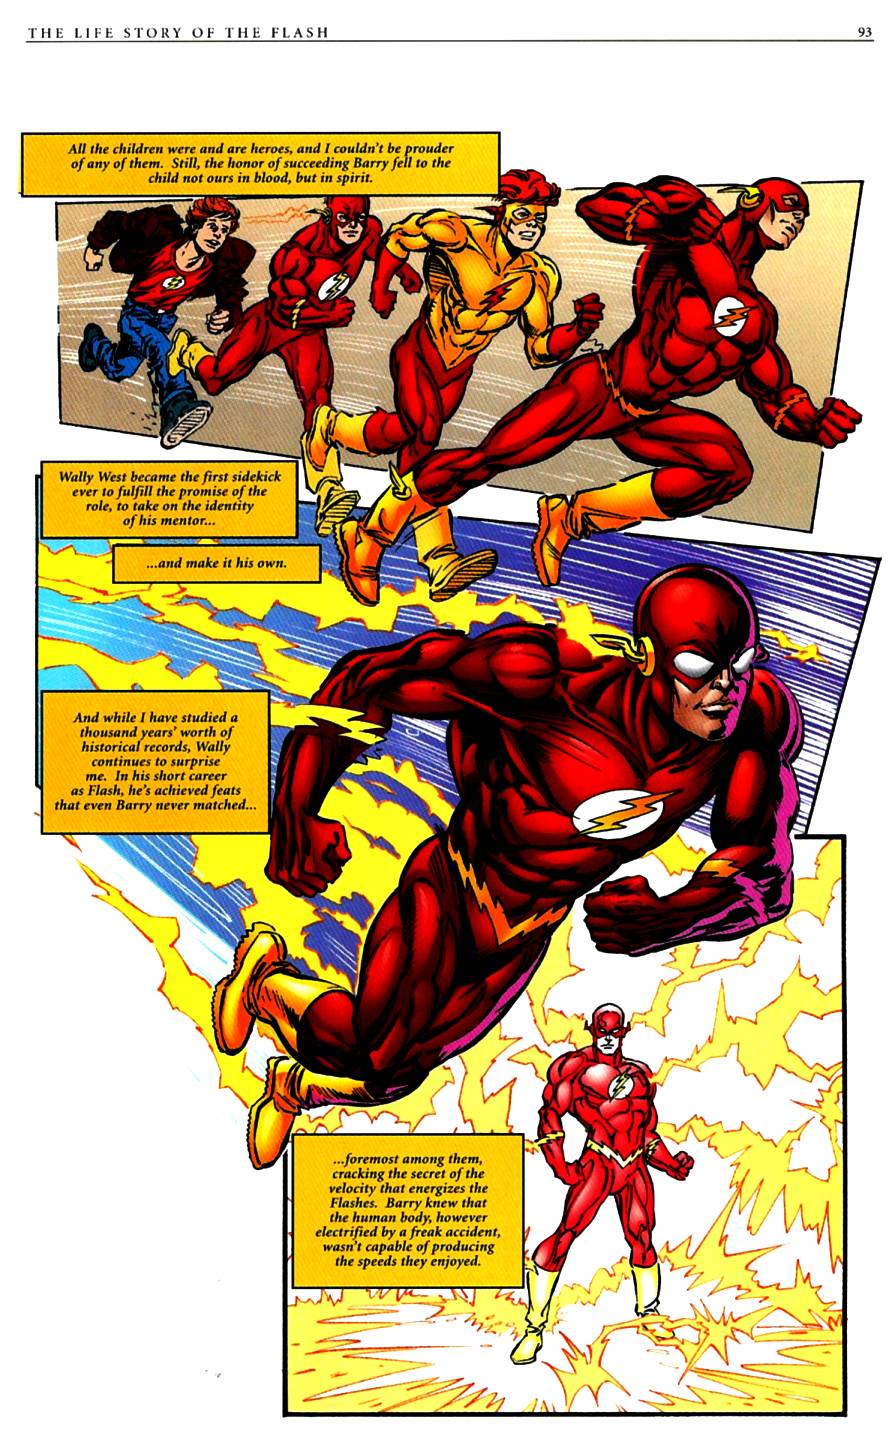 Read online The Life Story of the Flash comic -  Issue # Full - 95